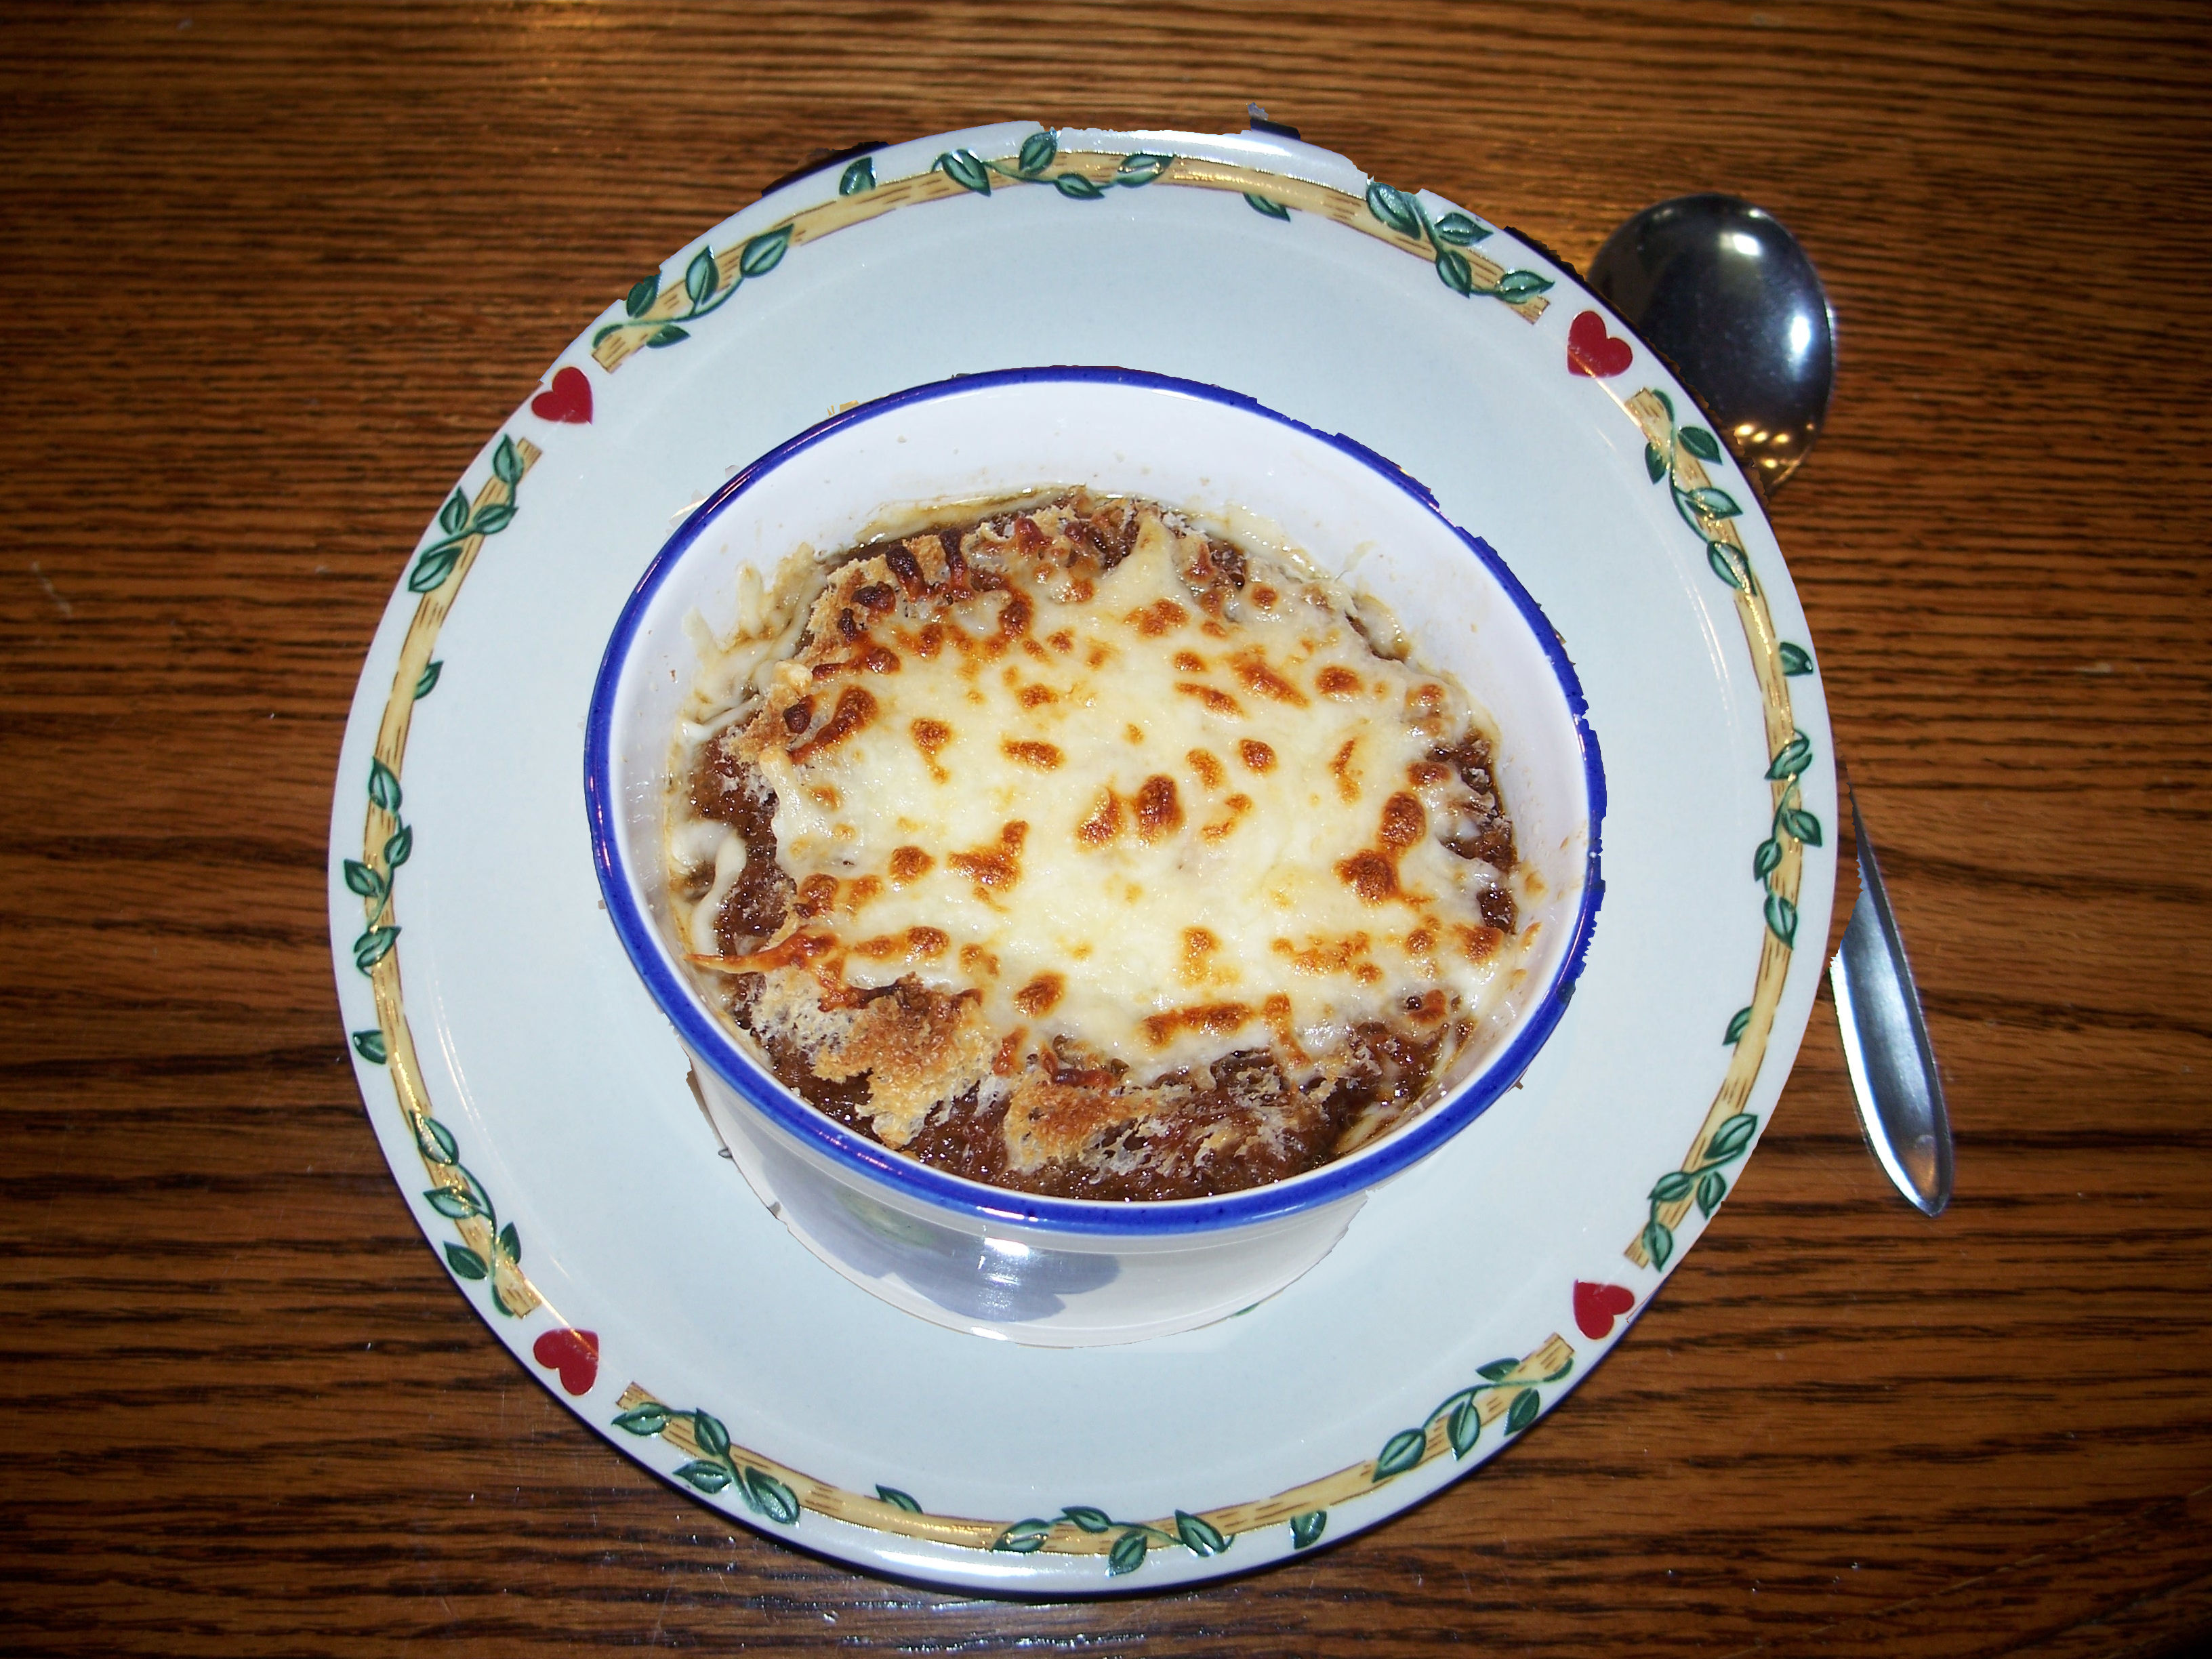 pix-2008-french-onion-soup-2